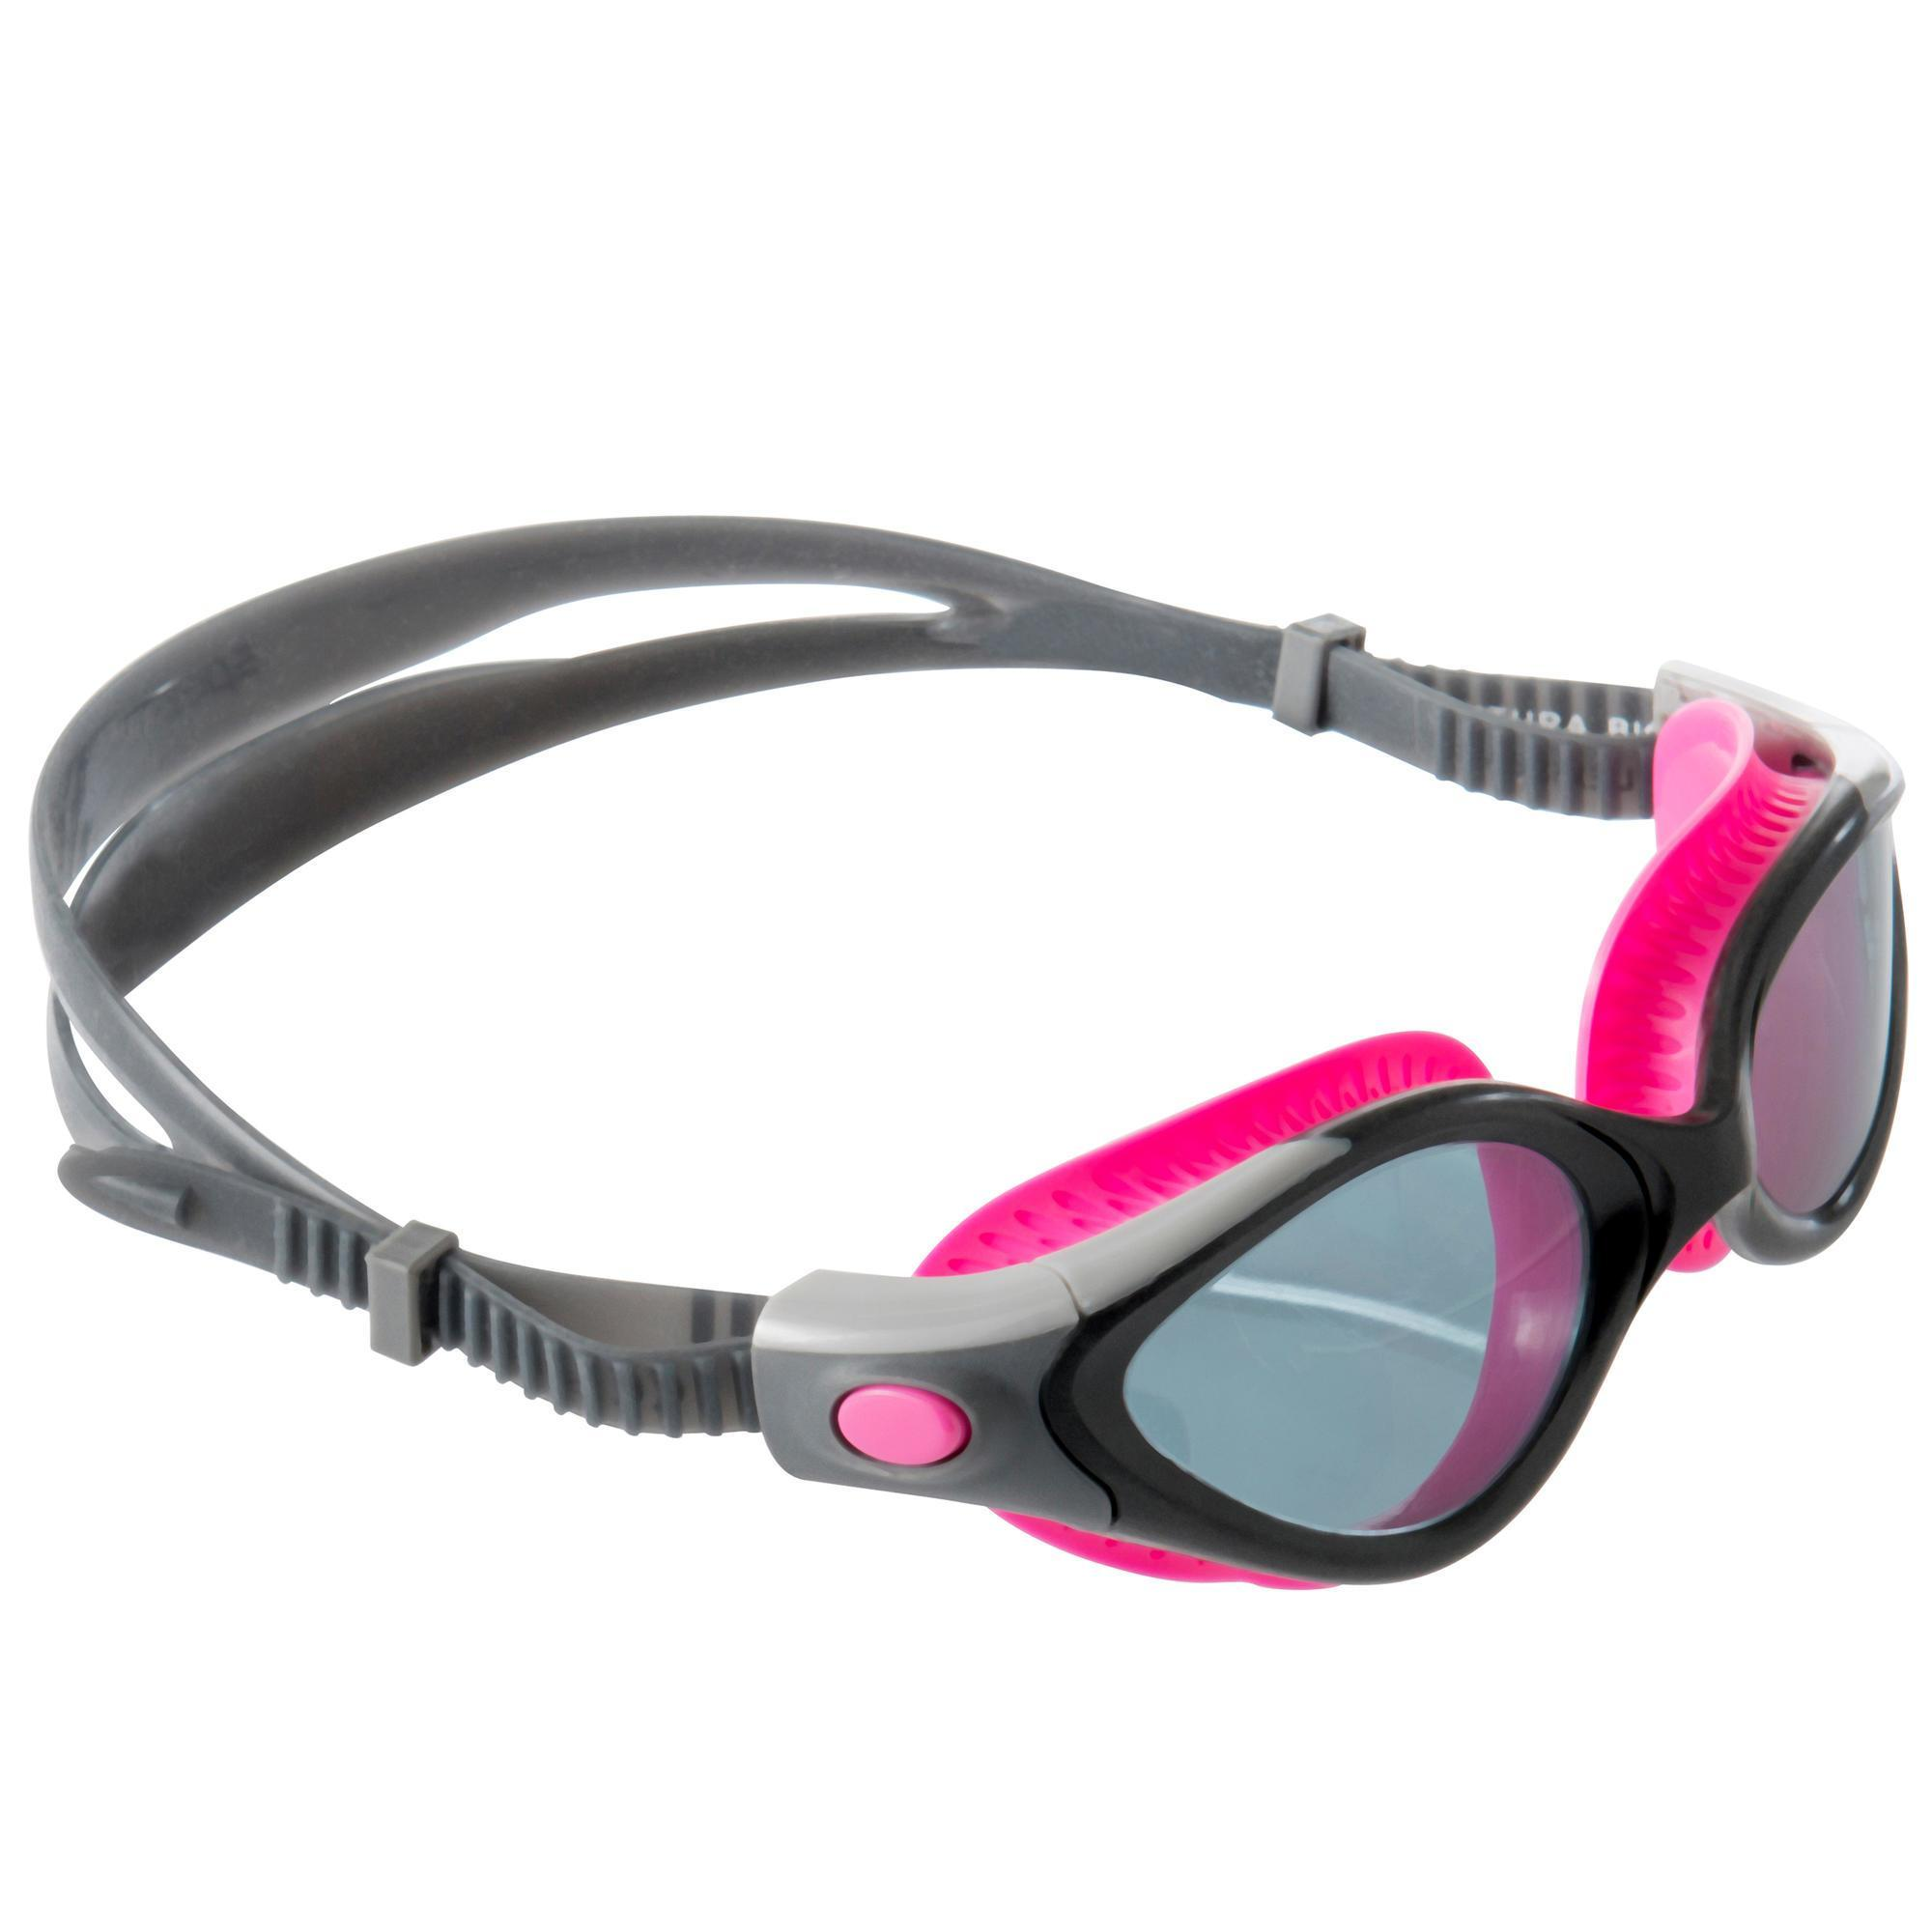 Speedo Zwembril Futura Biofuse Flexiseal dames roze